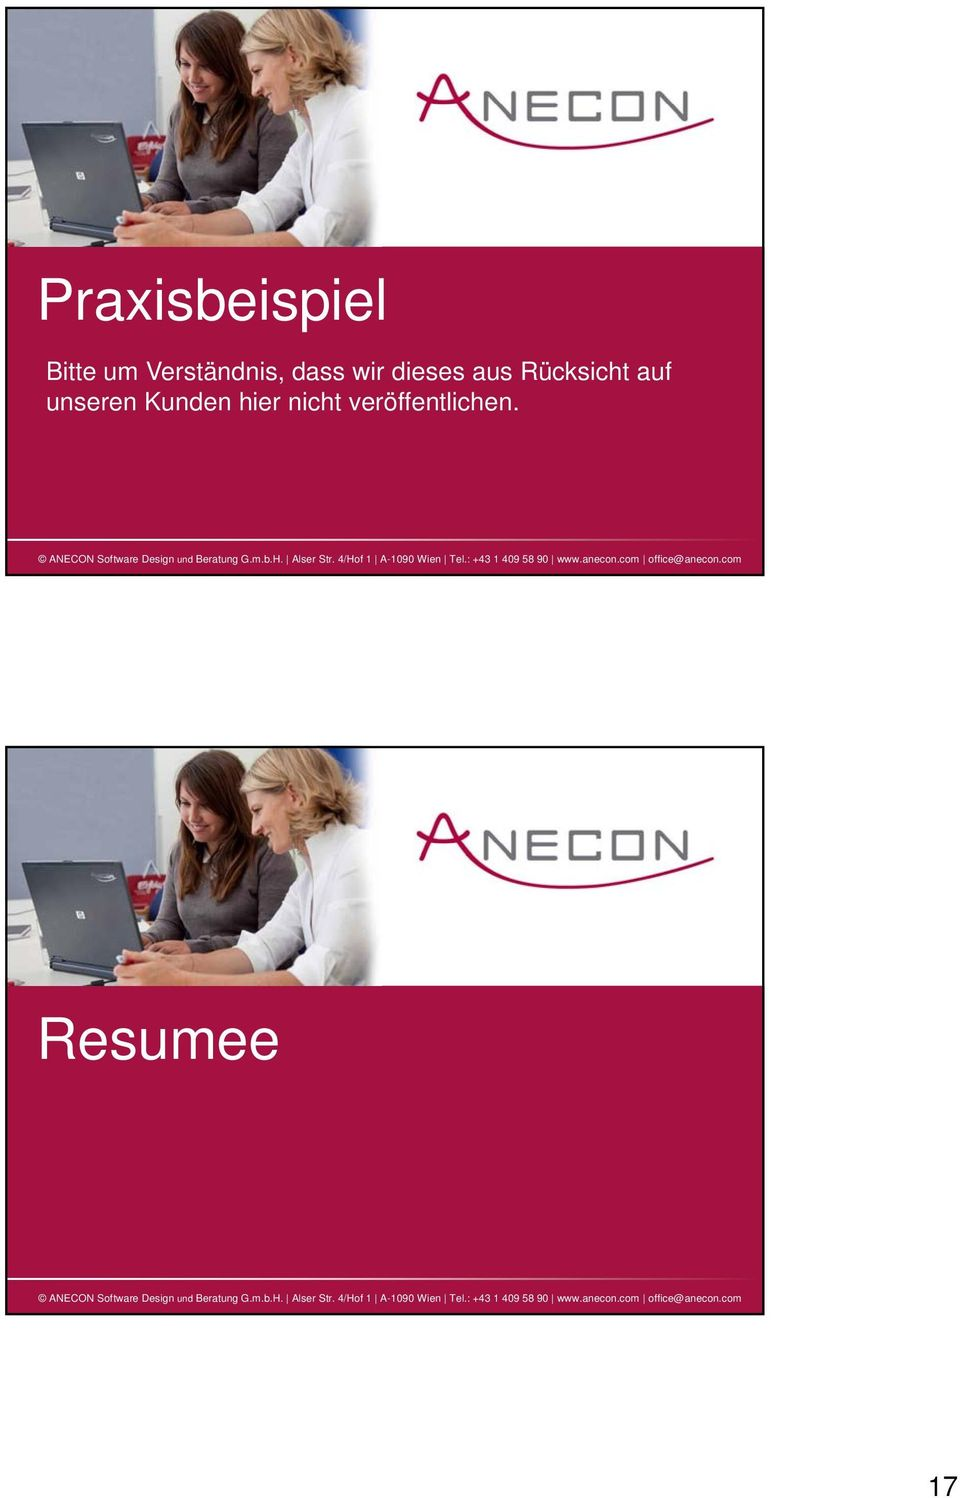 : +43 1 409 58 90 www.anecon.com office@anecon.com Resumee ANECON Software Design und Beratung G.